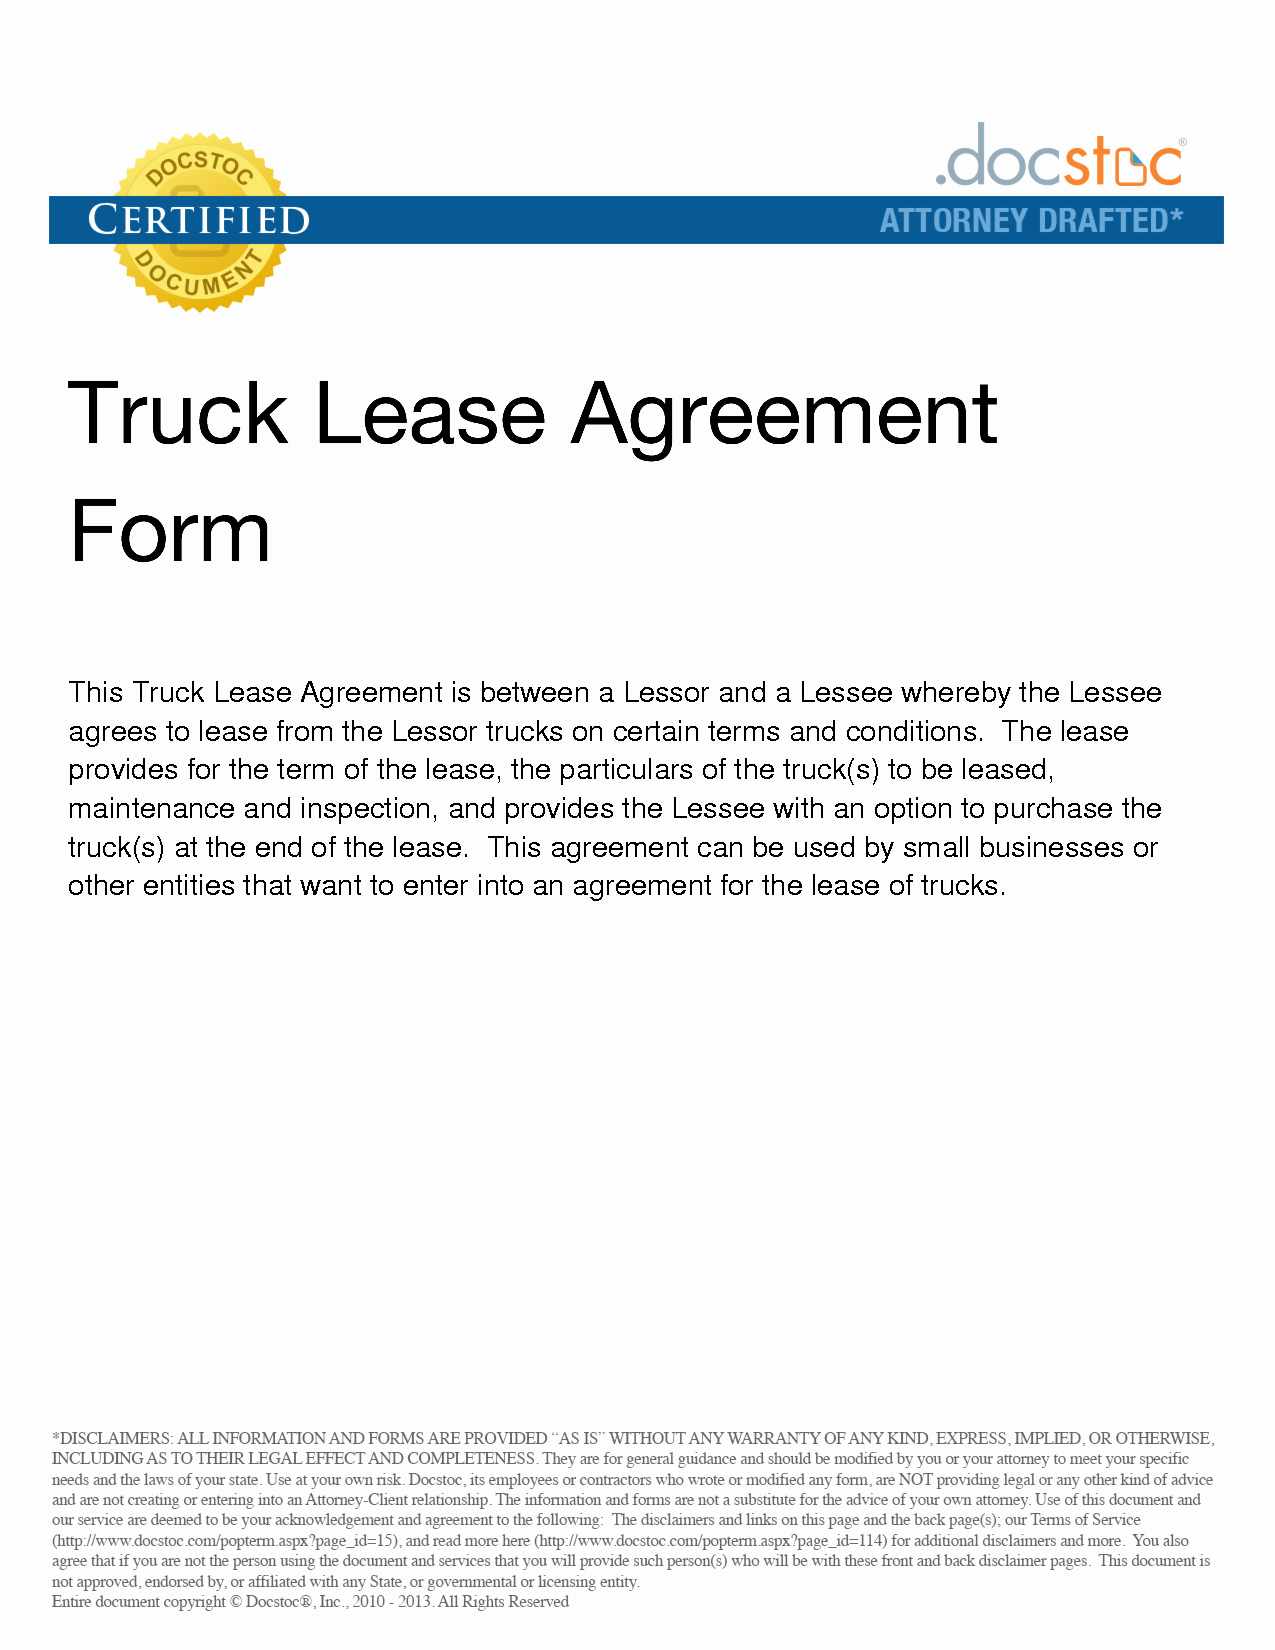 Truck Lease Agreement Template New Best S Of Sample Truck Lease Pany Truck Lease